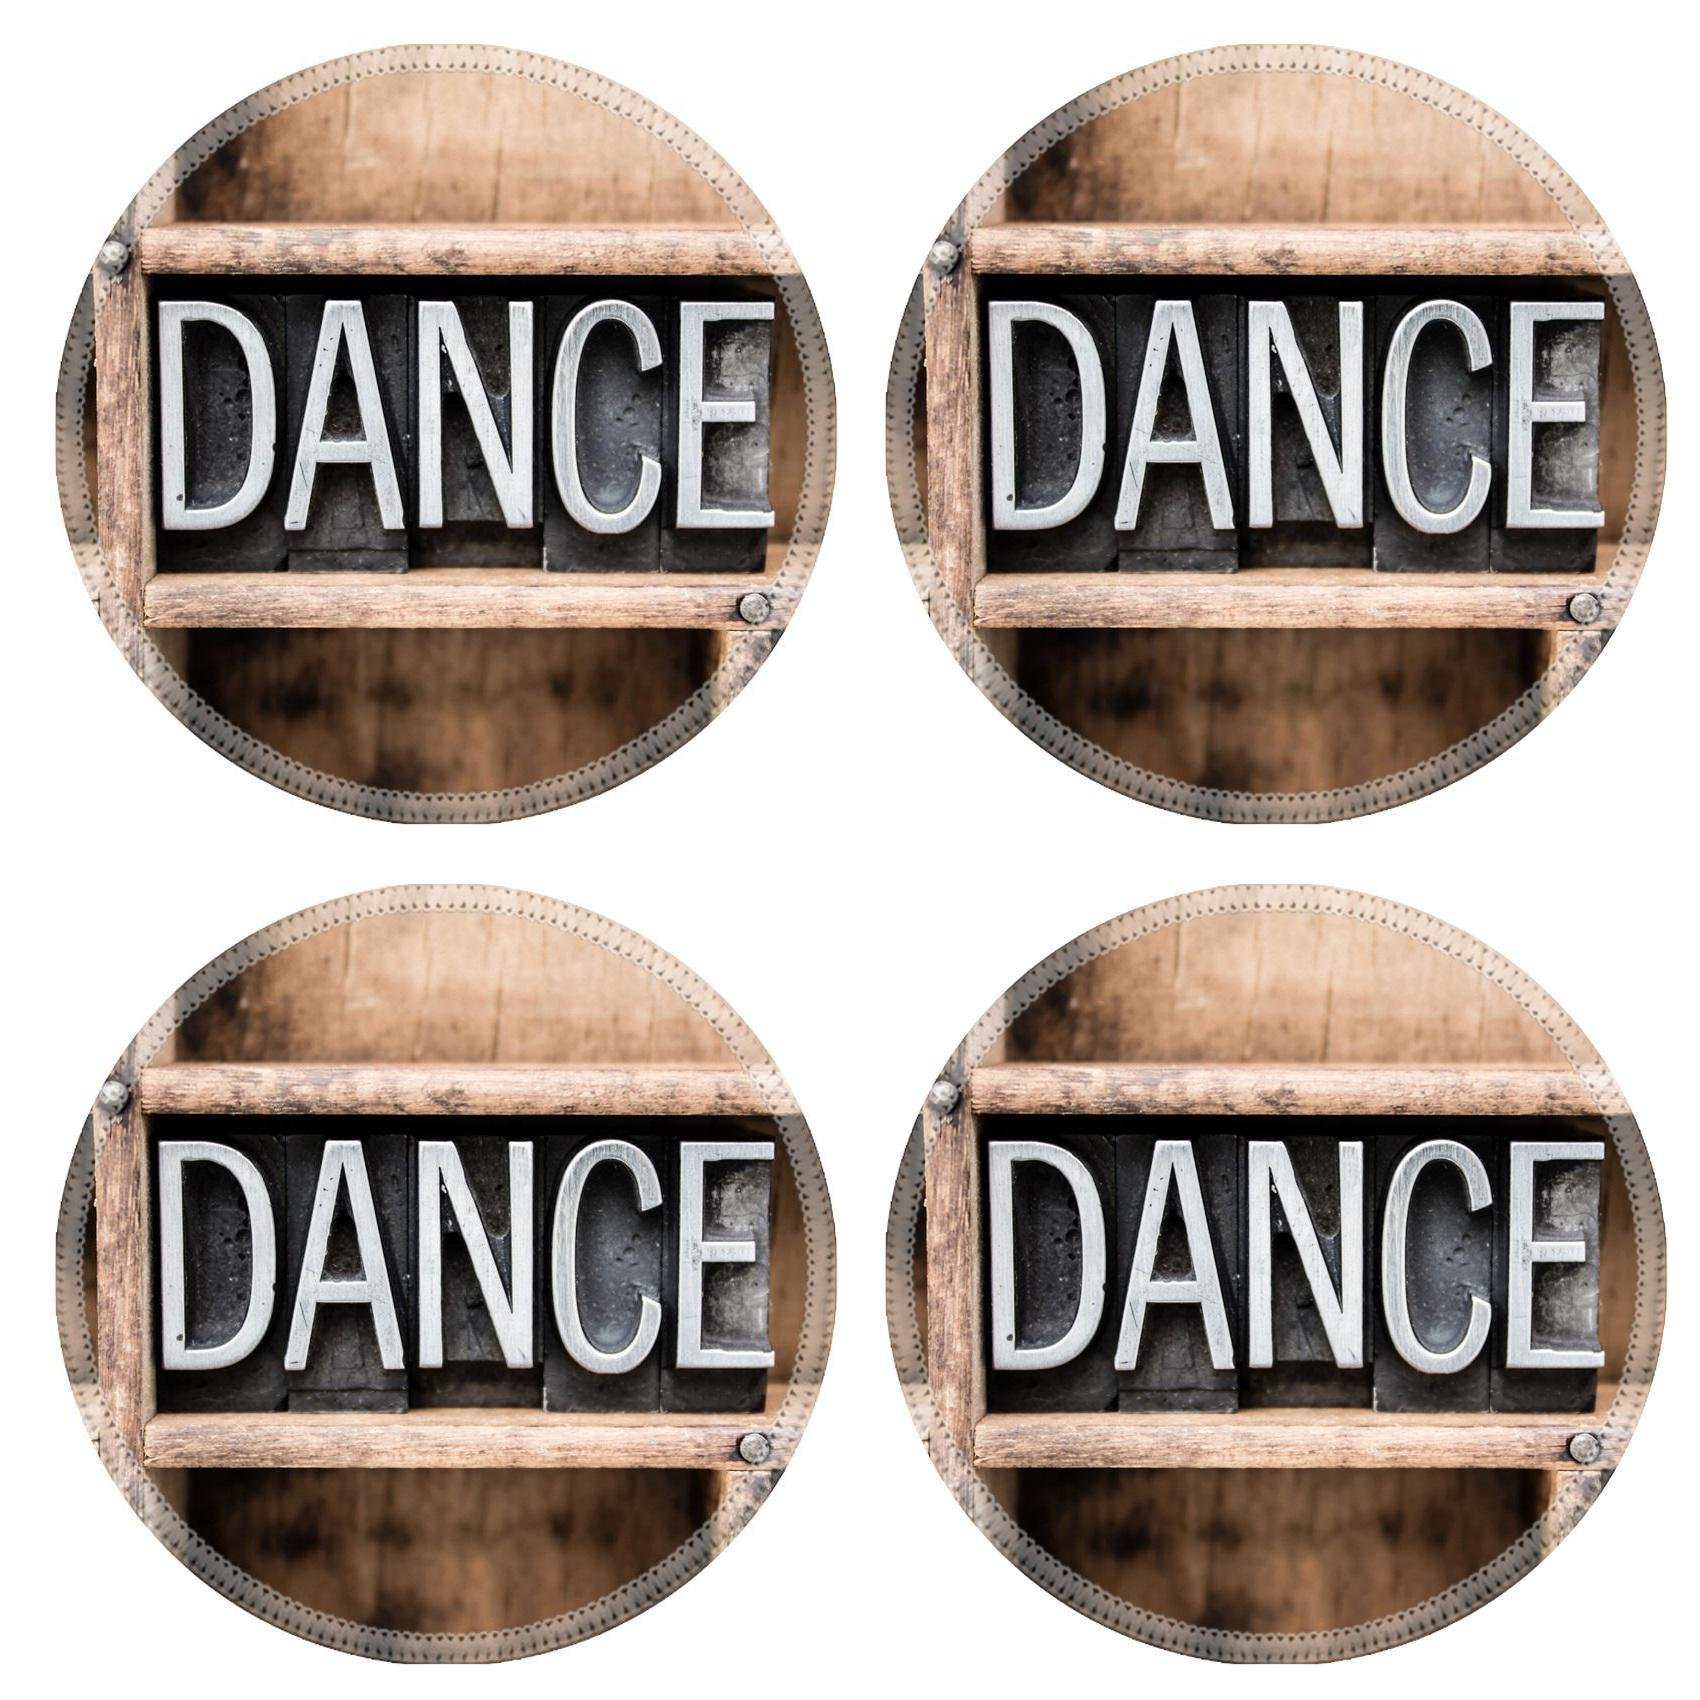 Luxlady Natural Rubber Round Coasters IMAGE ID: 37015564 The word DANCE written in vintage metal letterpress type in a wooden drawer with dividers